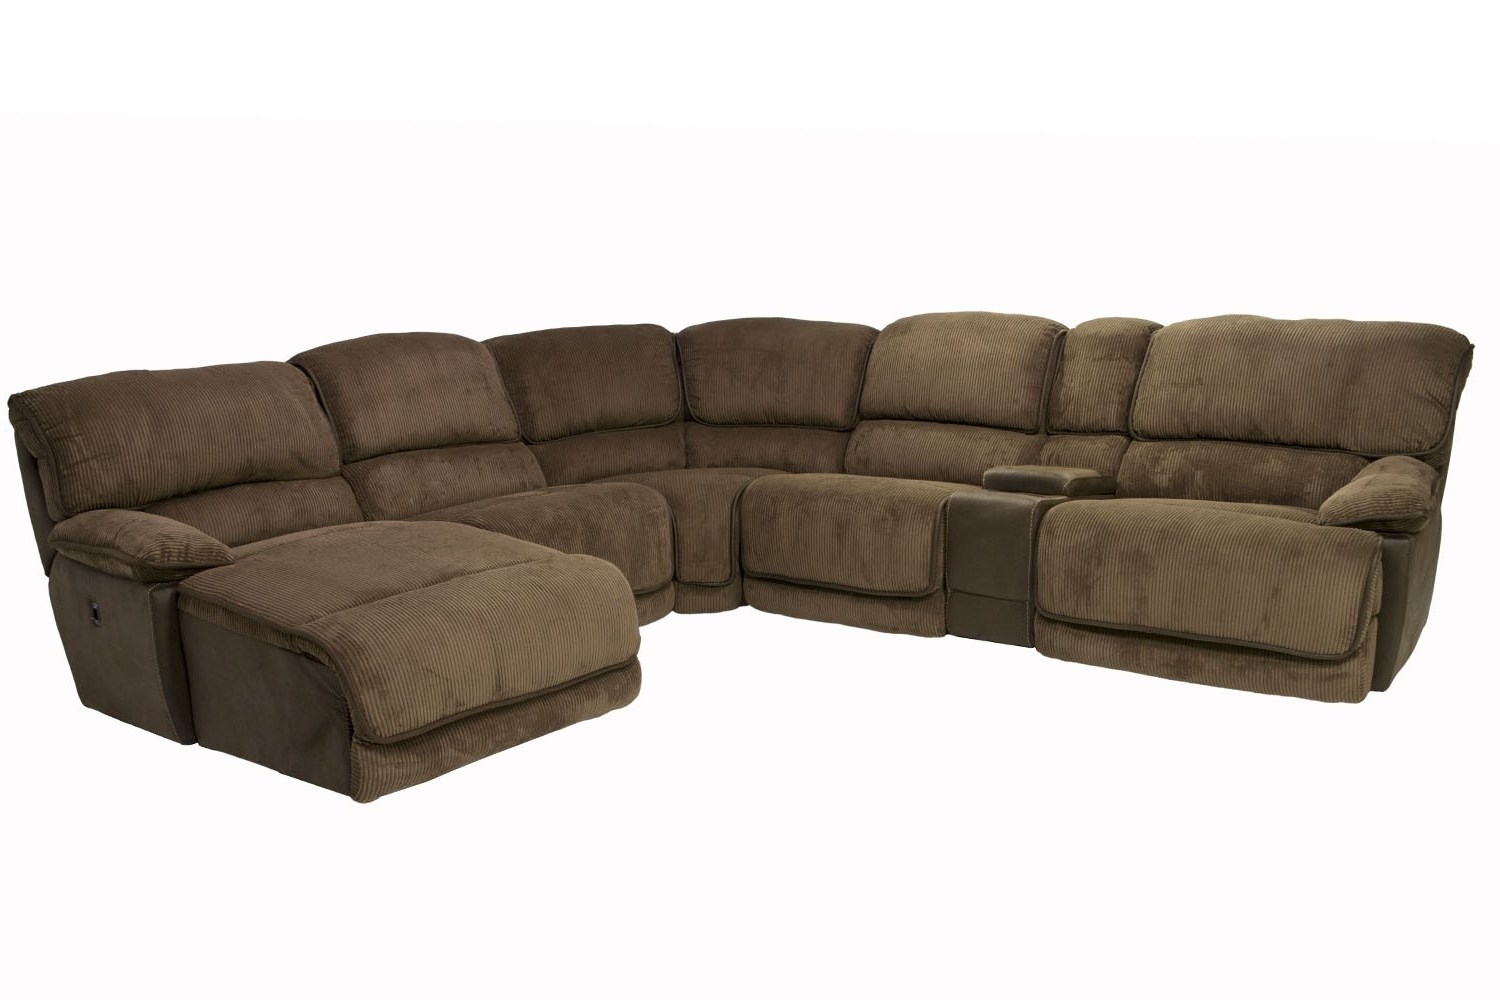 Popular Right Facing Chaise Sectionals Throughout Austin Chocolate 6 Piece Right Facing Chaise Sectional (View 7 of 15)